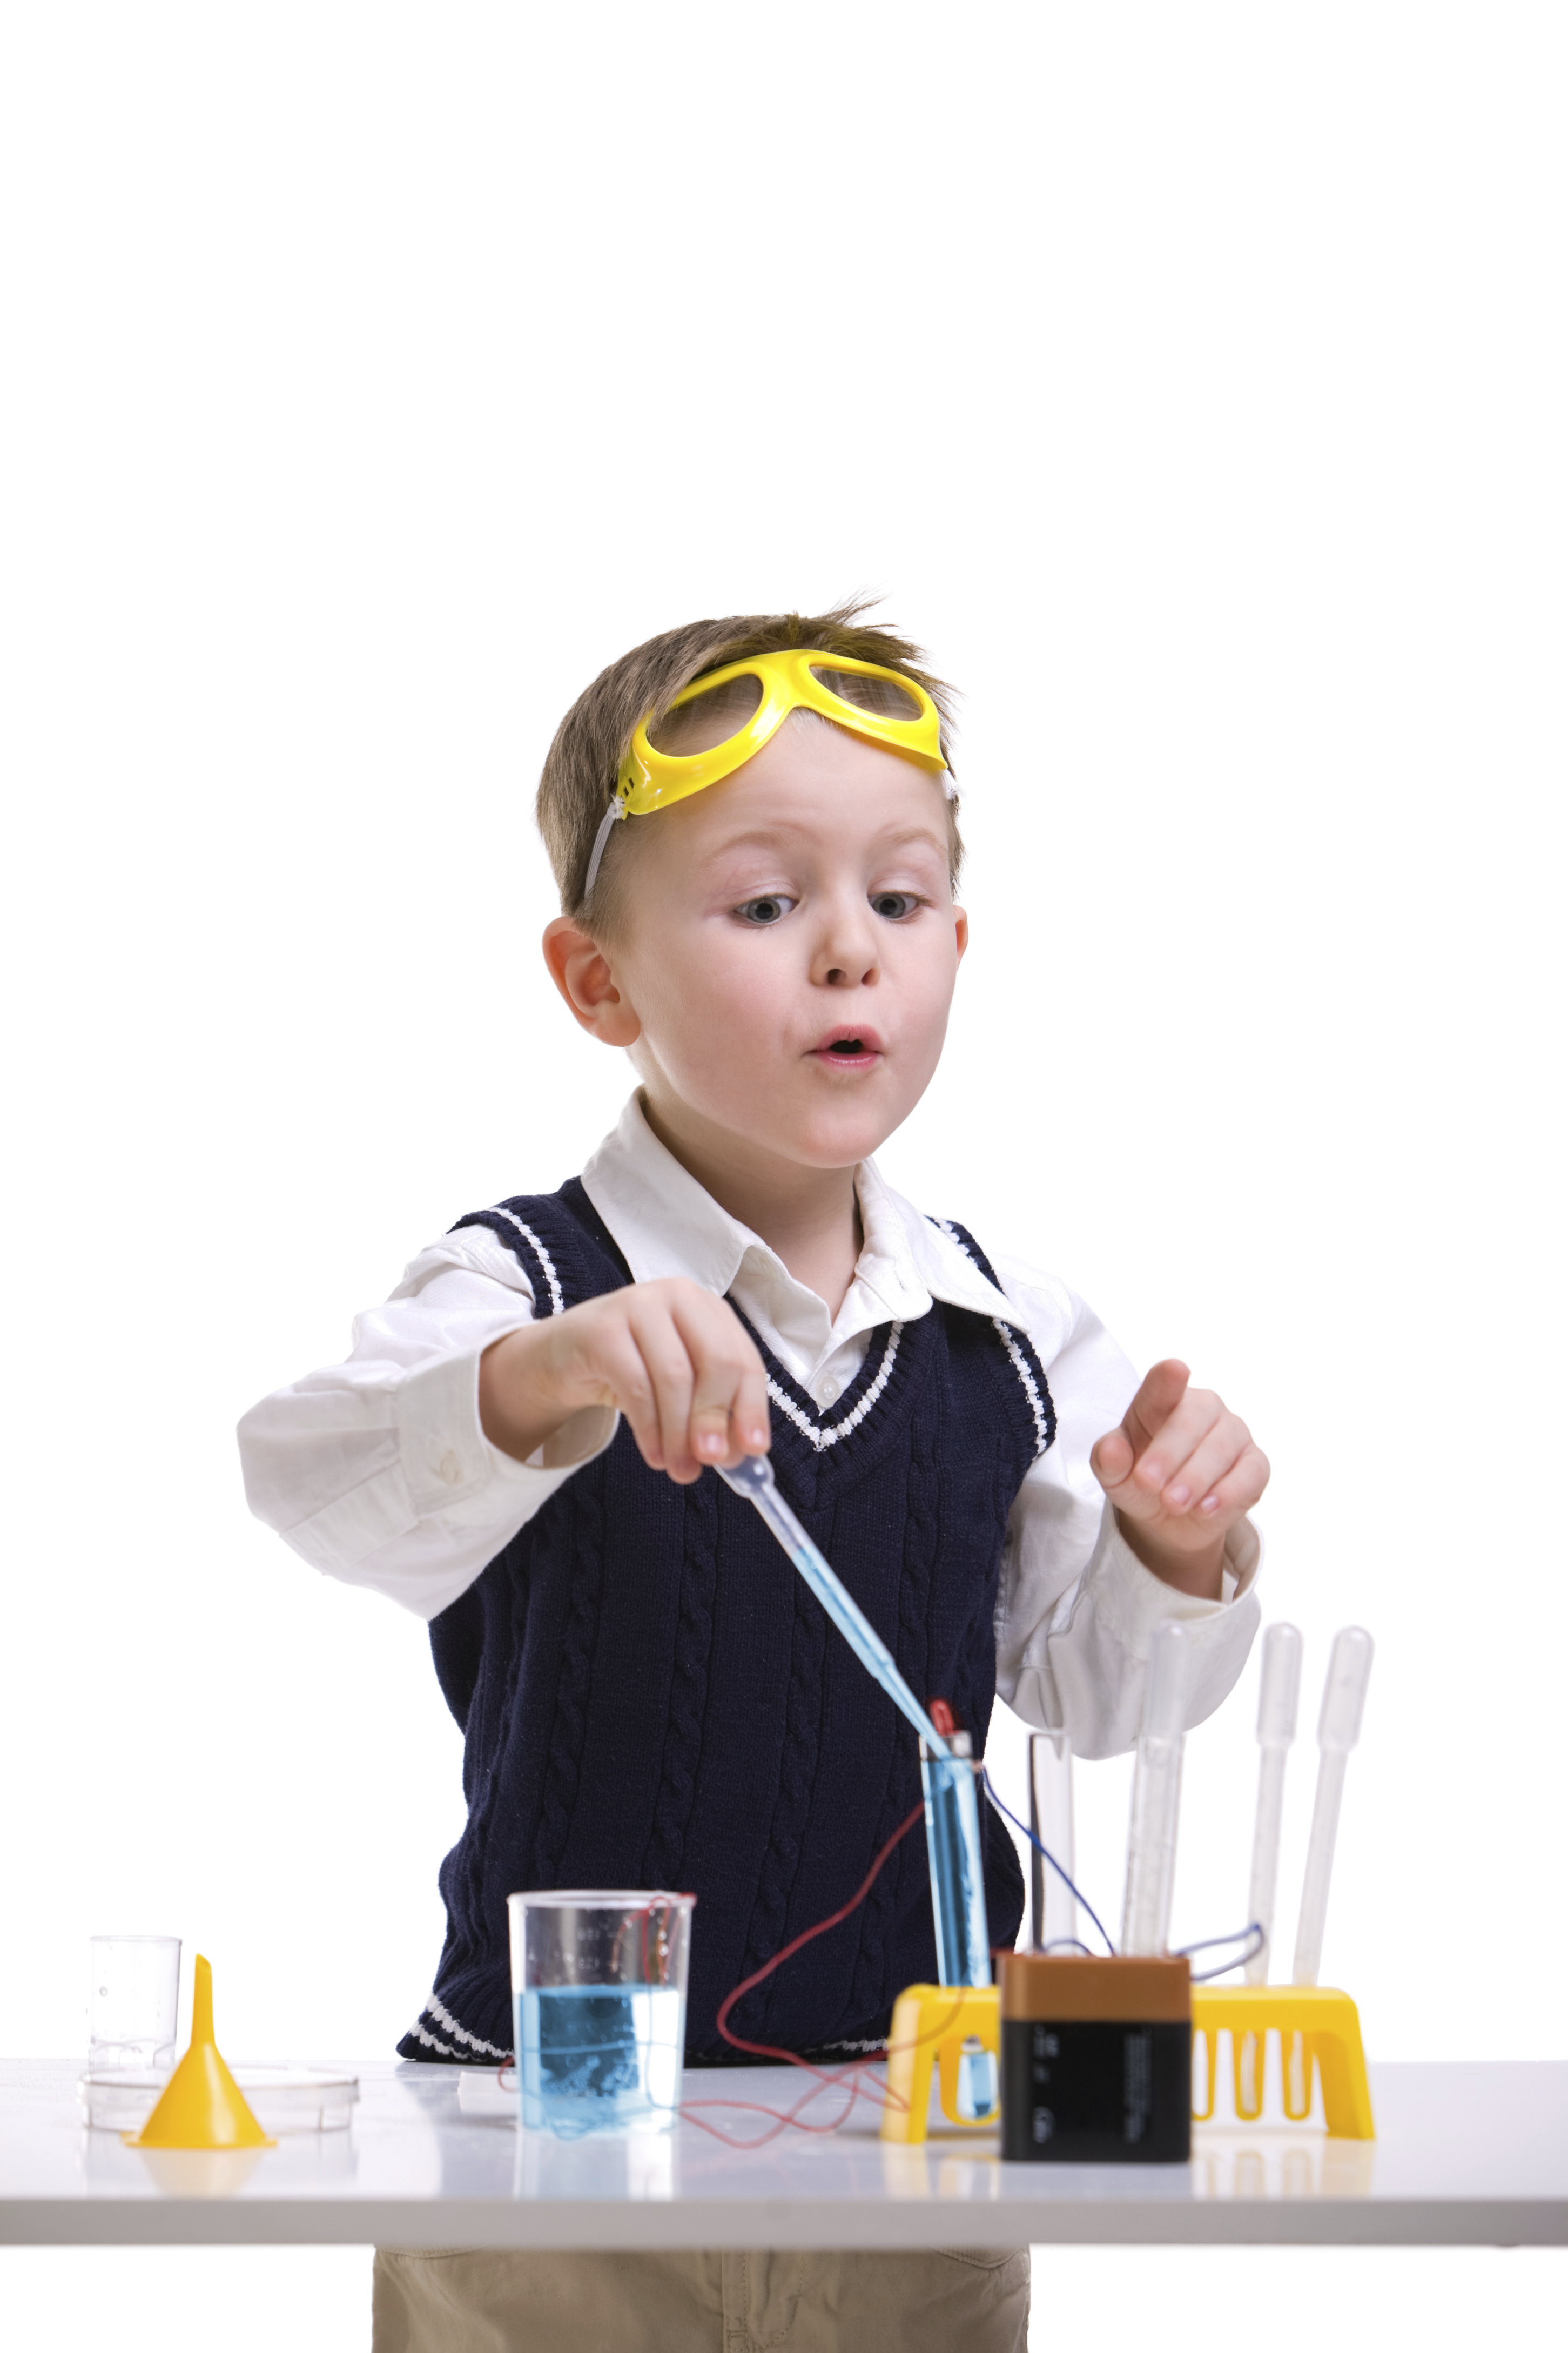 5 Hands-On Science Activities for 6-9 Year Olds